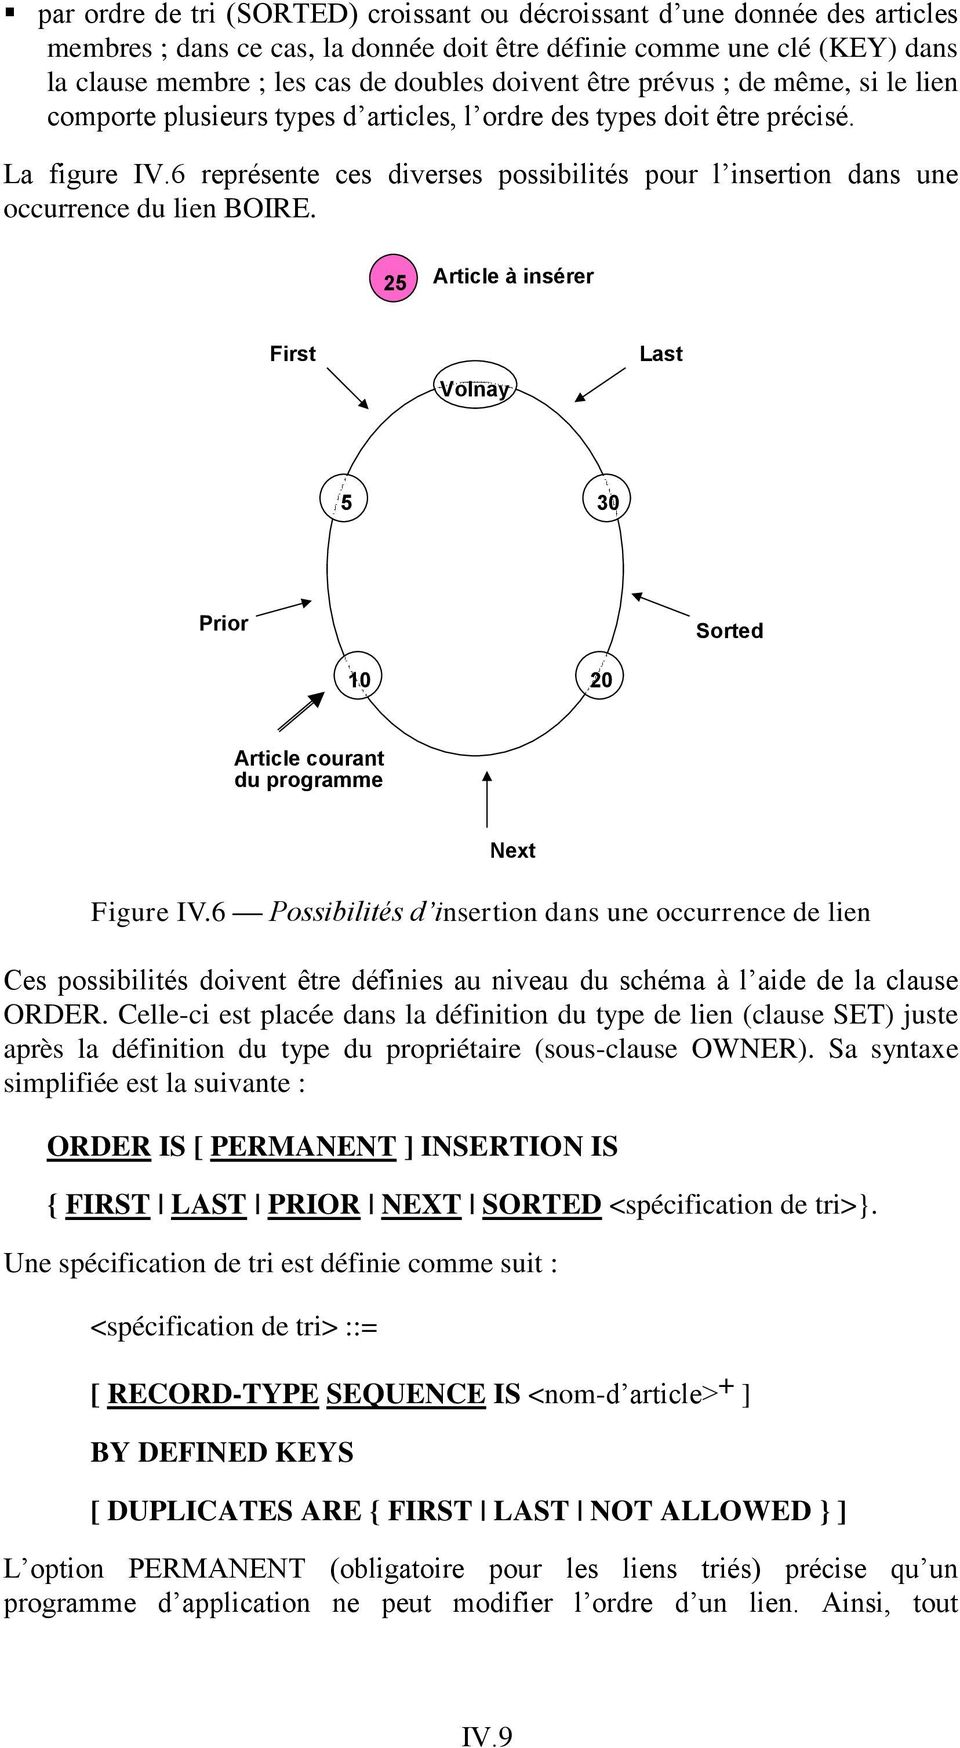 6 représente ces diverses possibilités pour l insertion dans une occurrence du lien BOIRE. 25 Article à insérer First Volnay Last 5 30 Prior Sorted 10 20 Article courant du programme Next Figure IV.